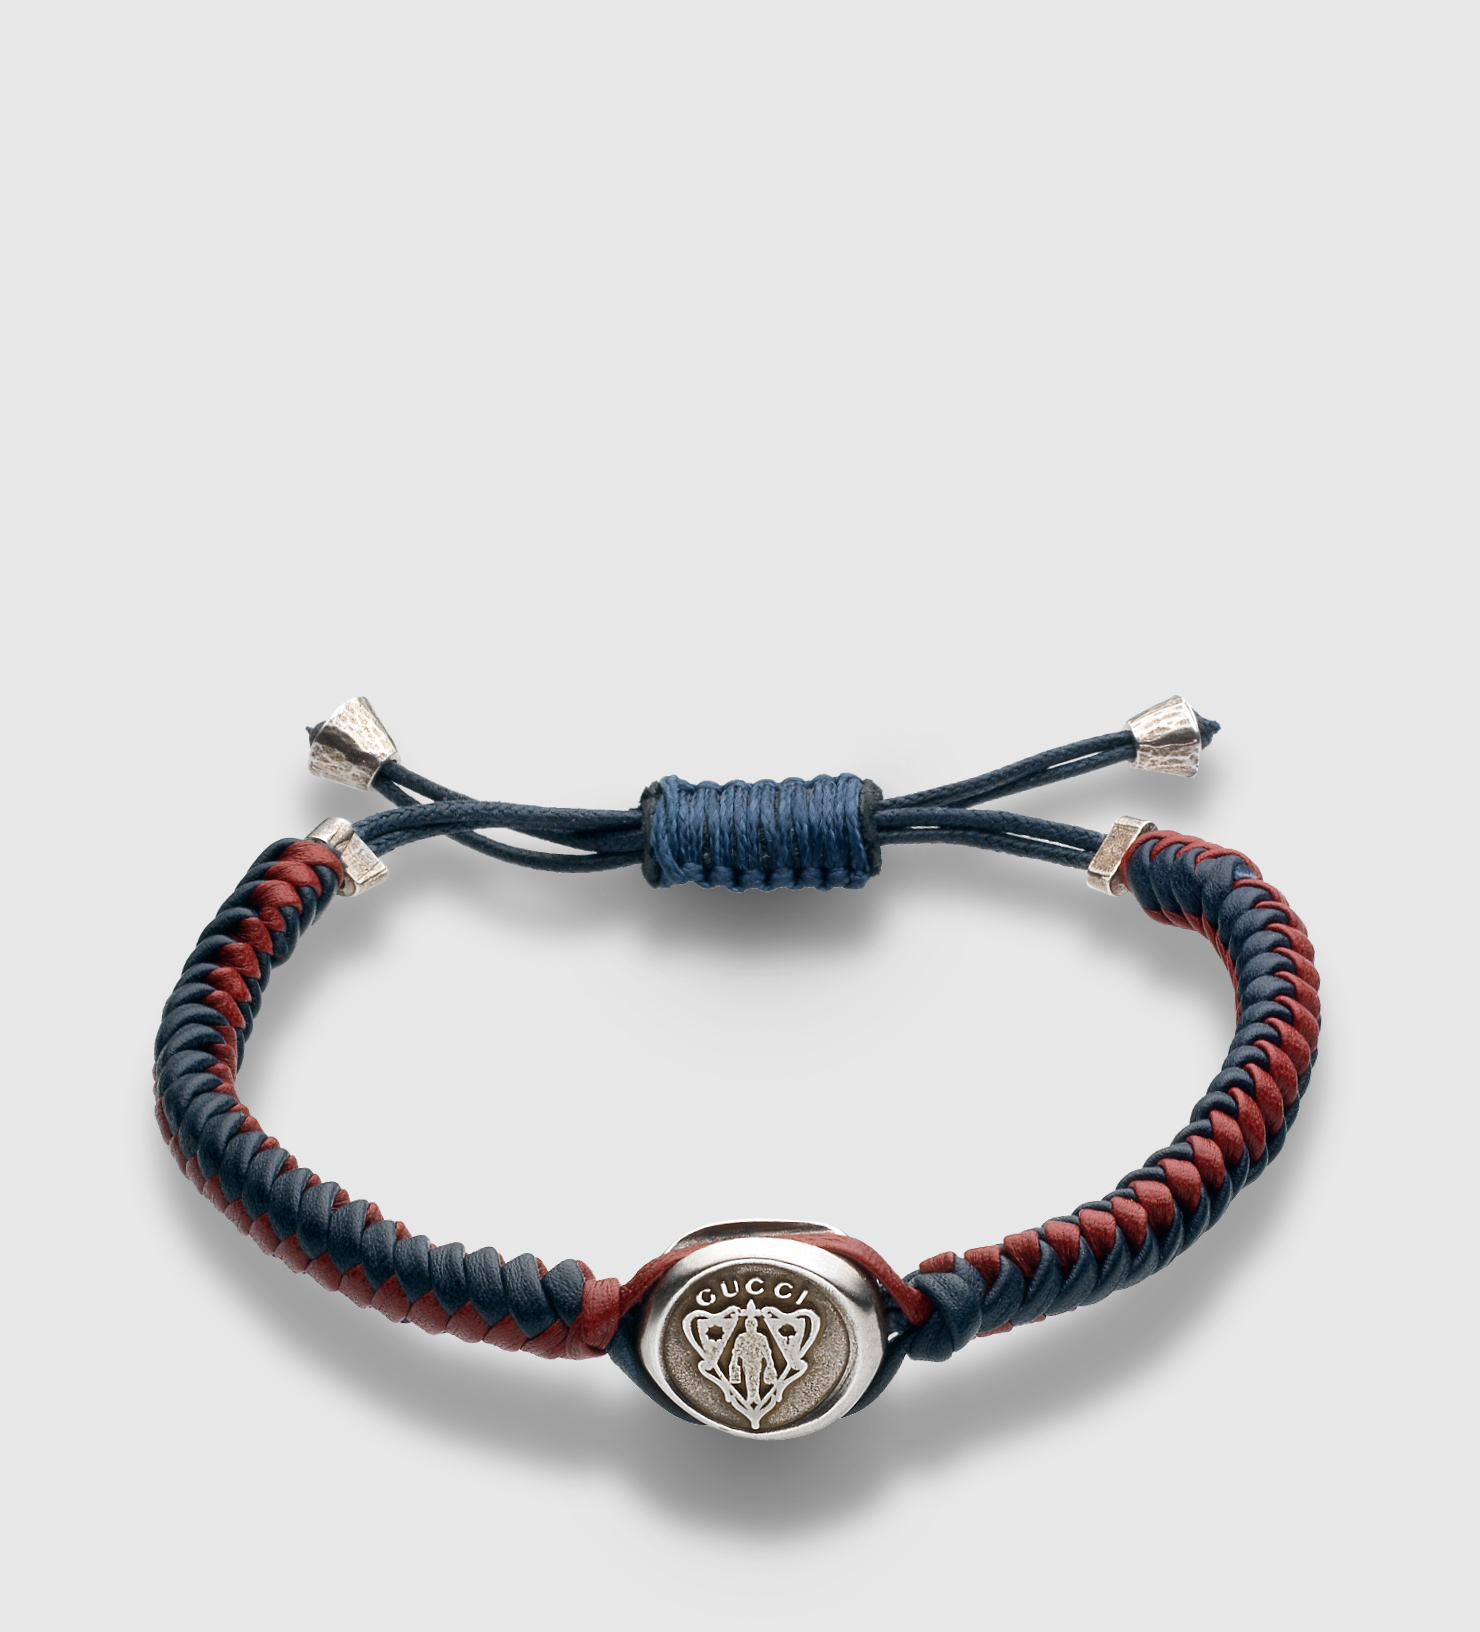 f1c2be3cf Gucci Woven Leather Bracelet With Crest Tag in Green for Men - Lyst